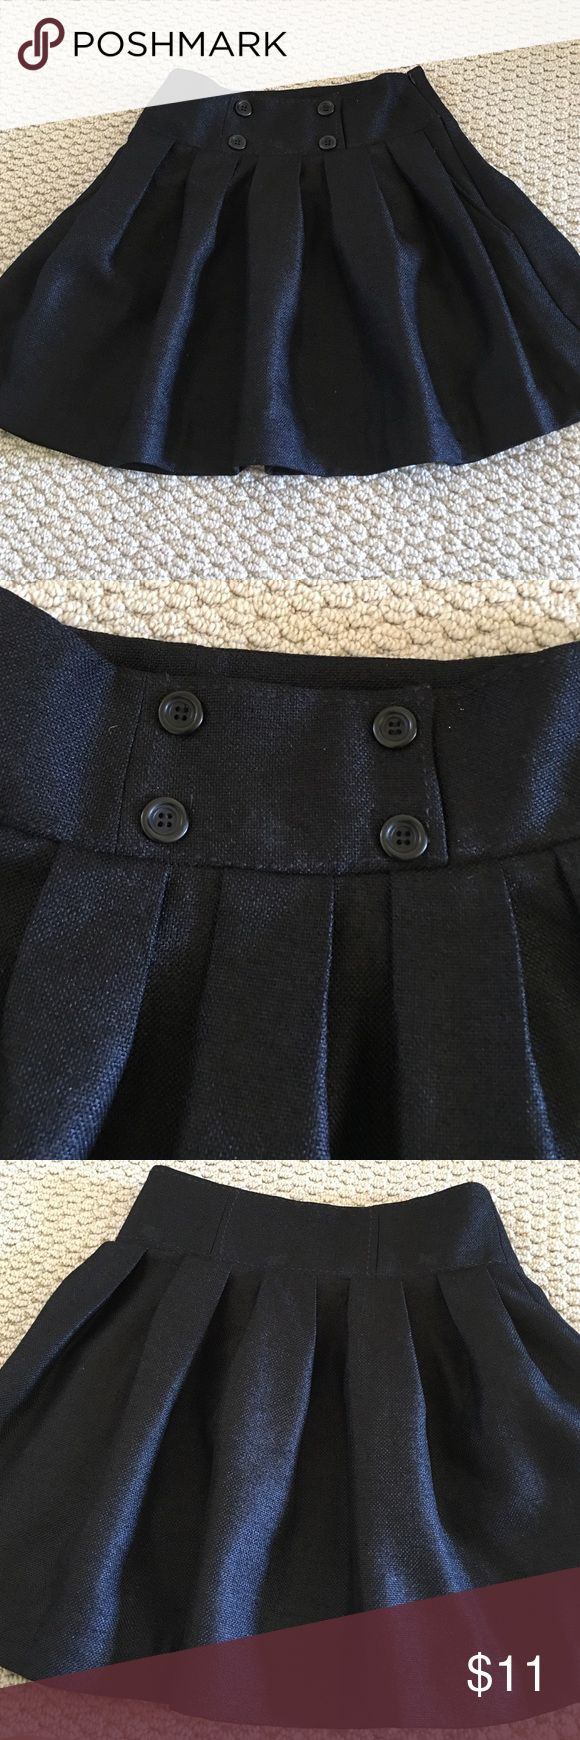 """BCBGeneration Skirt Black pleated skirt with side pockets.  Dressing up with heels or casual look with flats.  Normal wear and tear.  16 1/2"""" length. BCBGeneration Skirts Mini"""